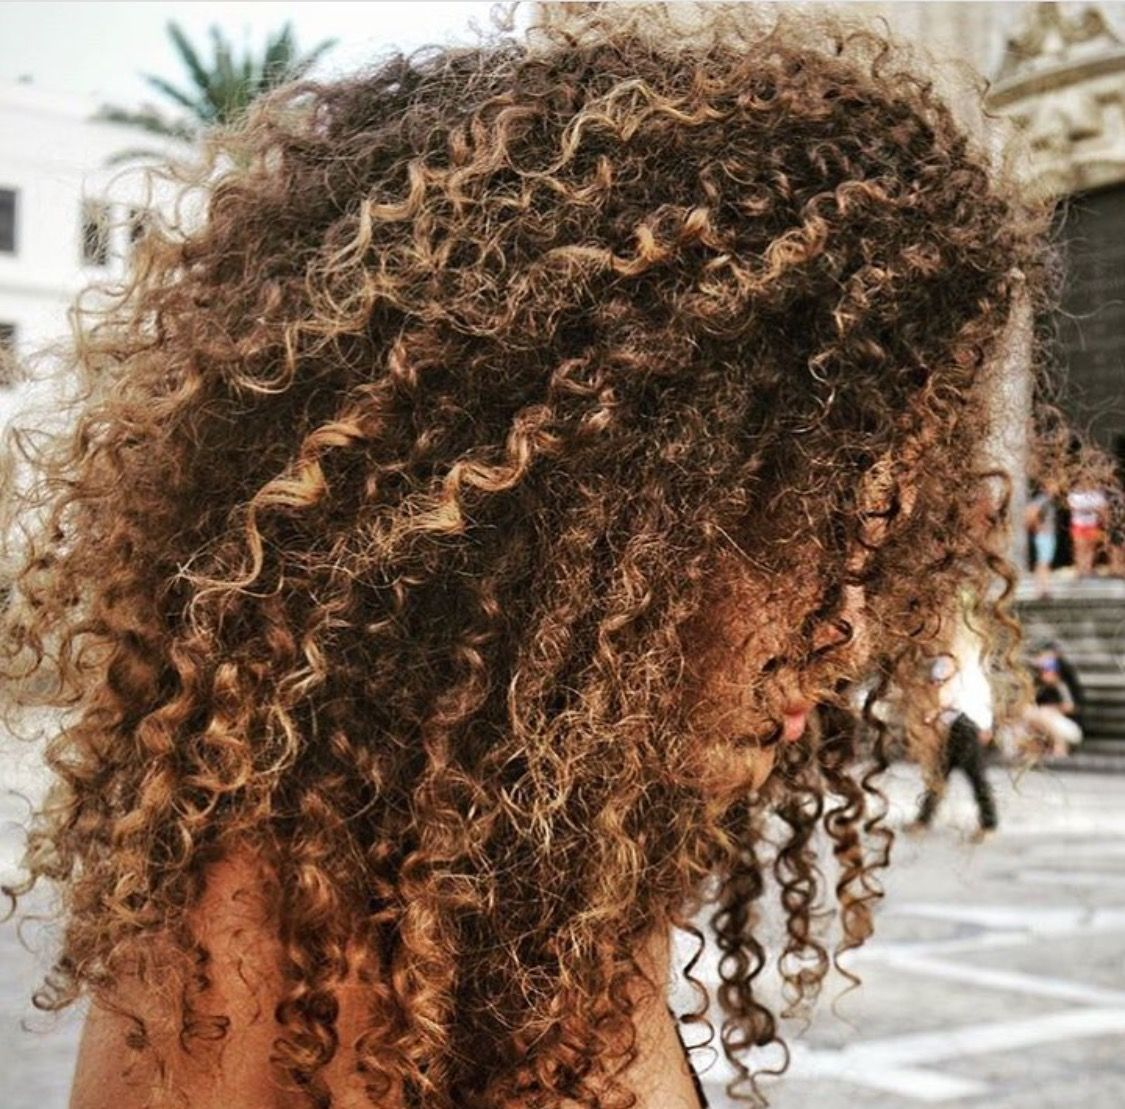 Pretty Brown Curls With Highlights Curly Hair Styles Naturally Curly Hair Styles Curly Hair Inspiration